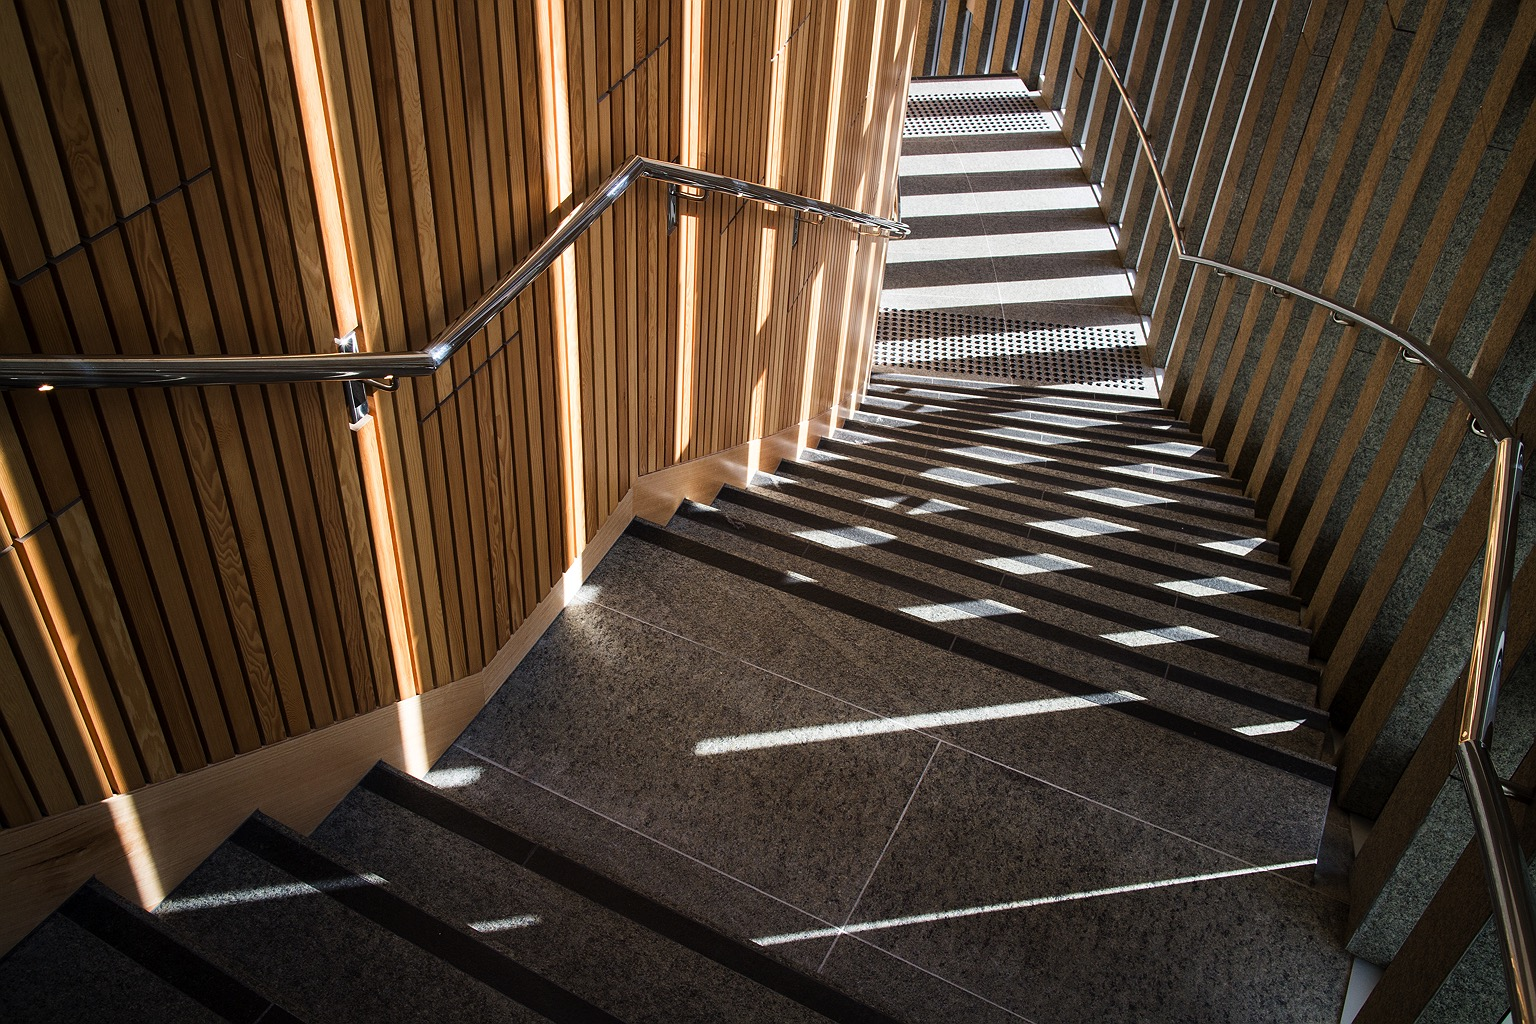 city-of-perth-library-stairs